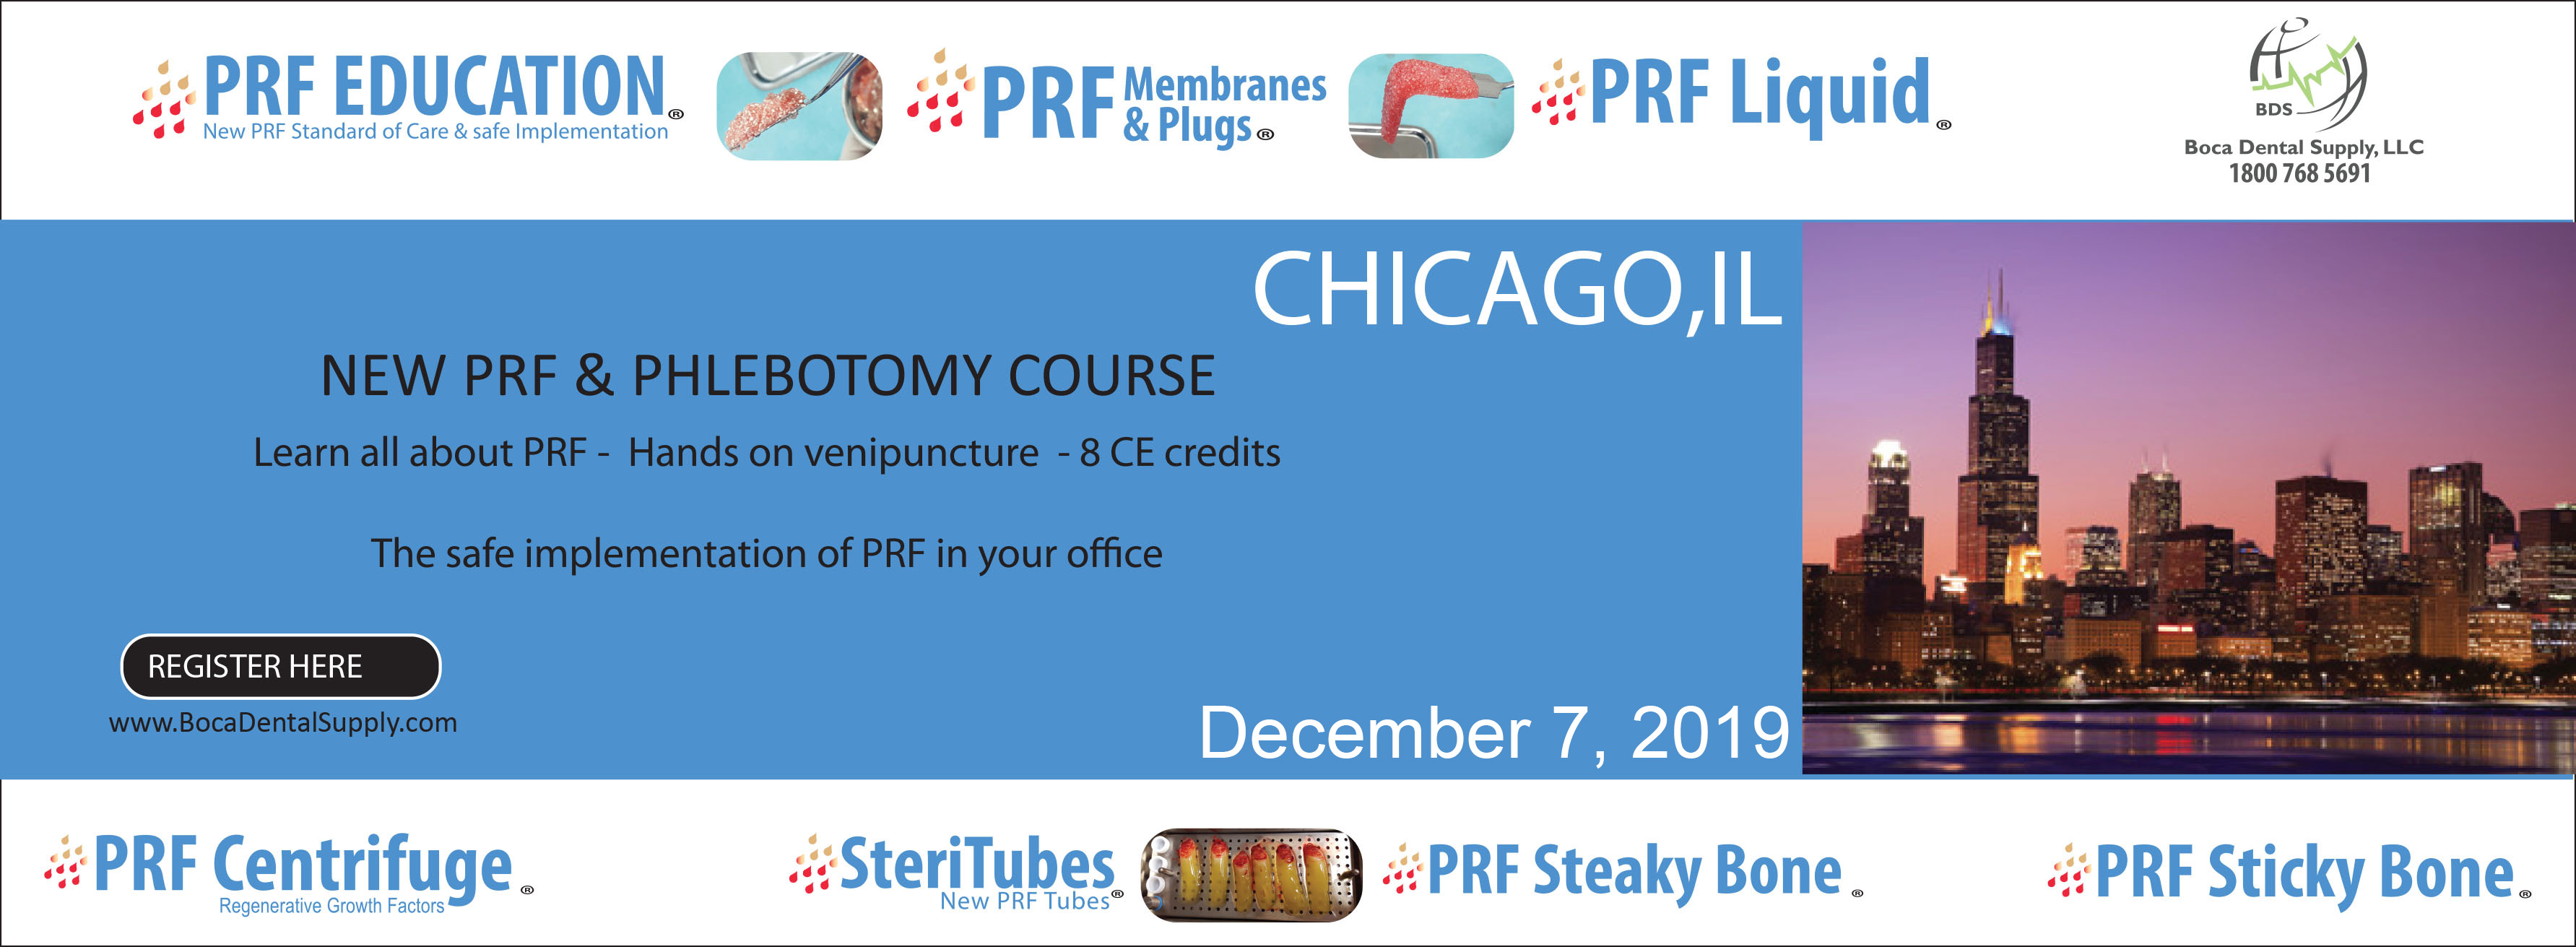 prf-course-new-chicago-2019-new-1.jpg